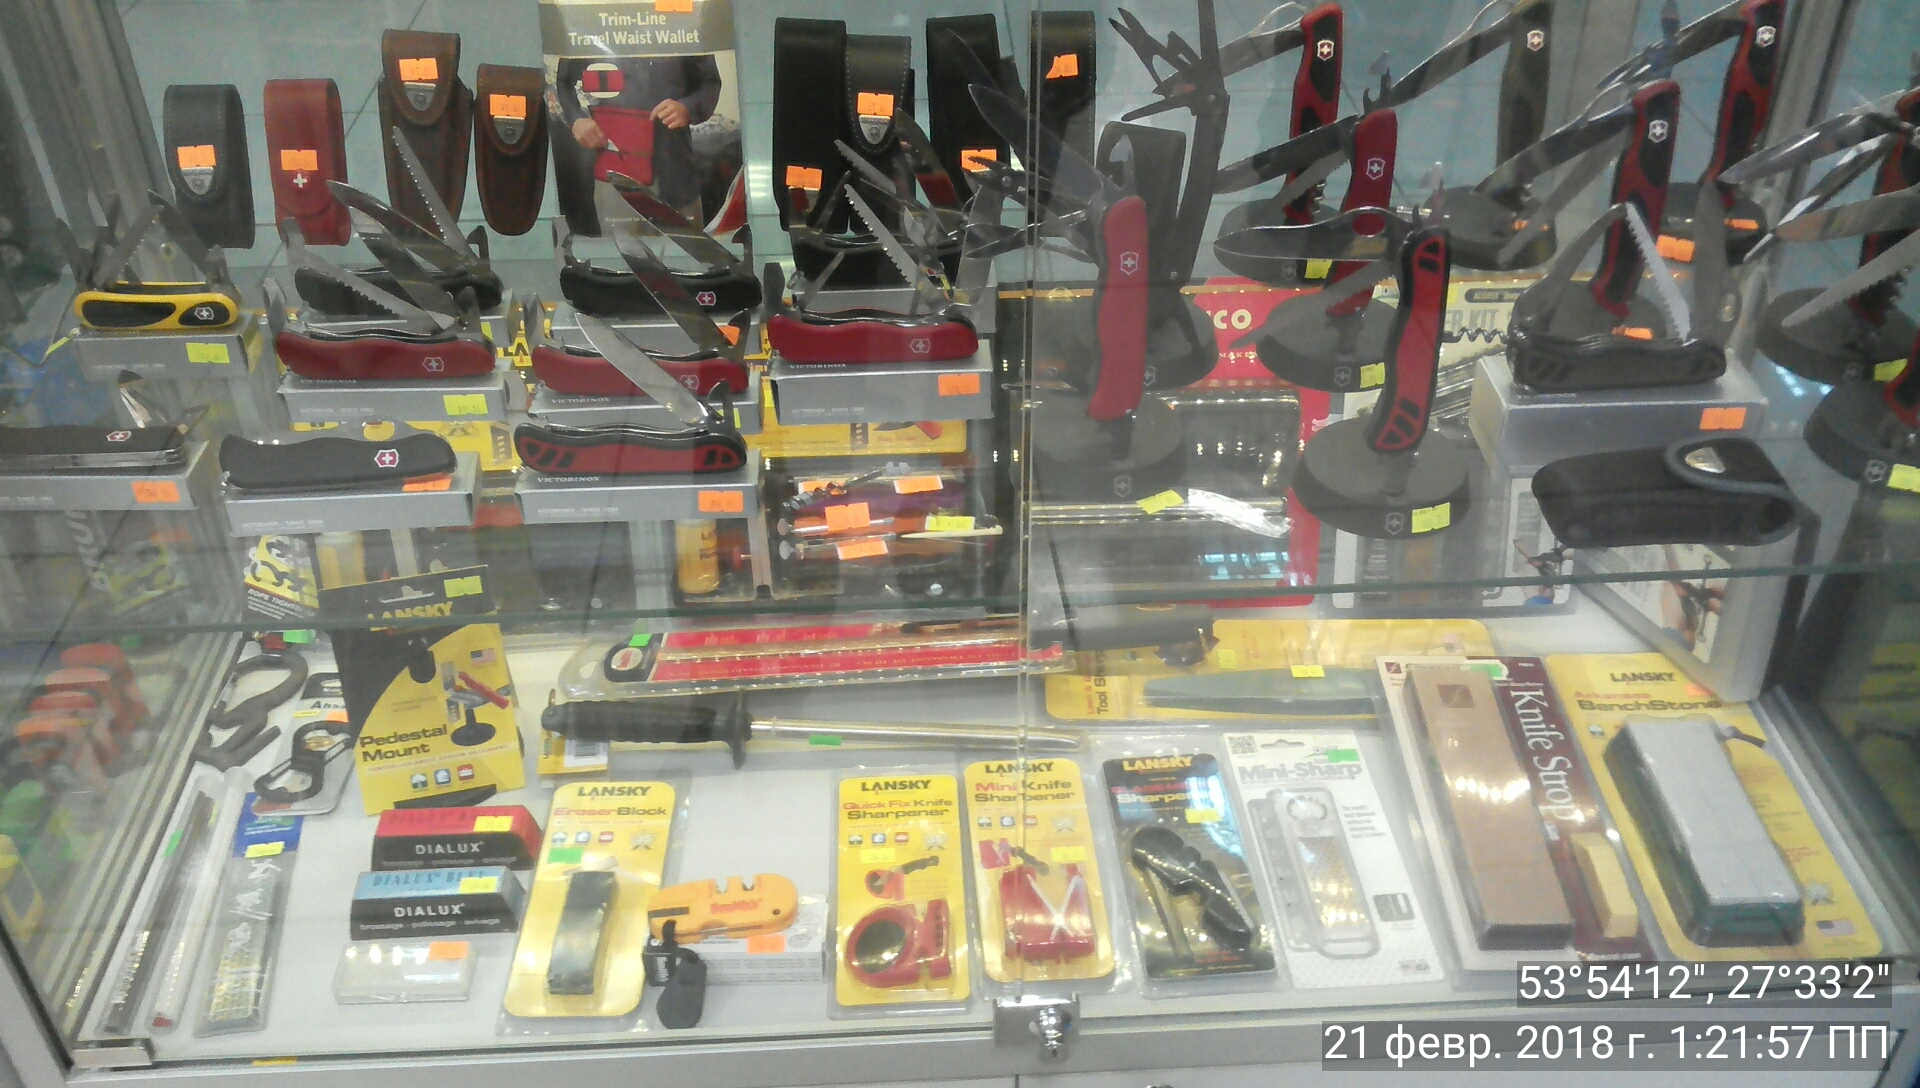 Tourism equipment Knifeworks by - Folding knives, multitools